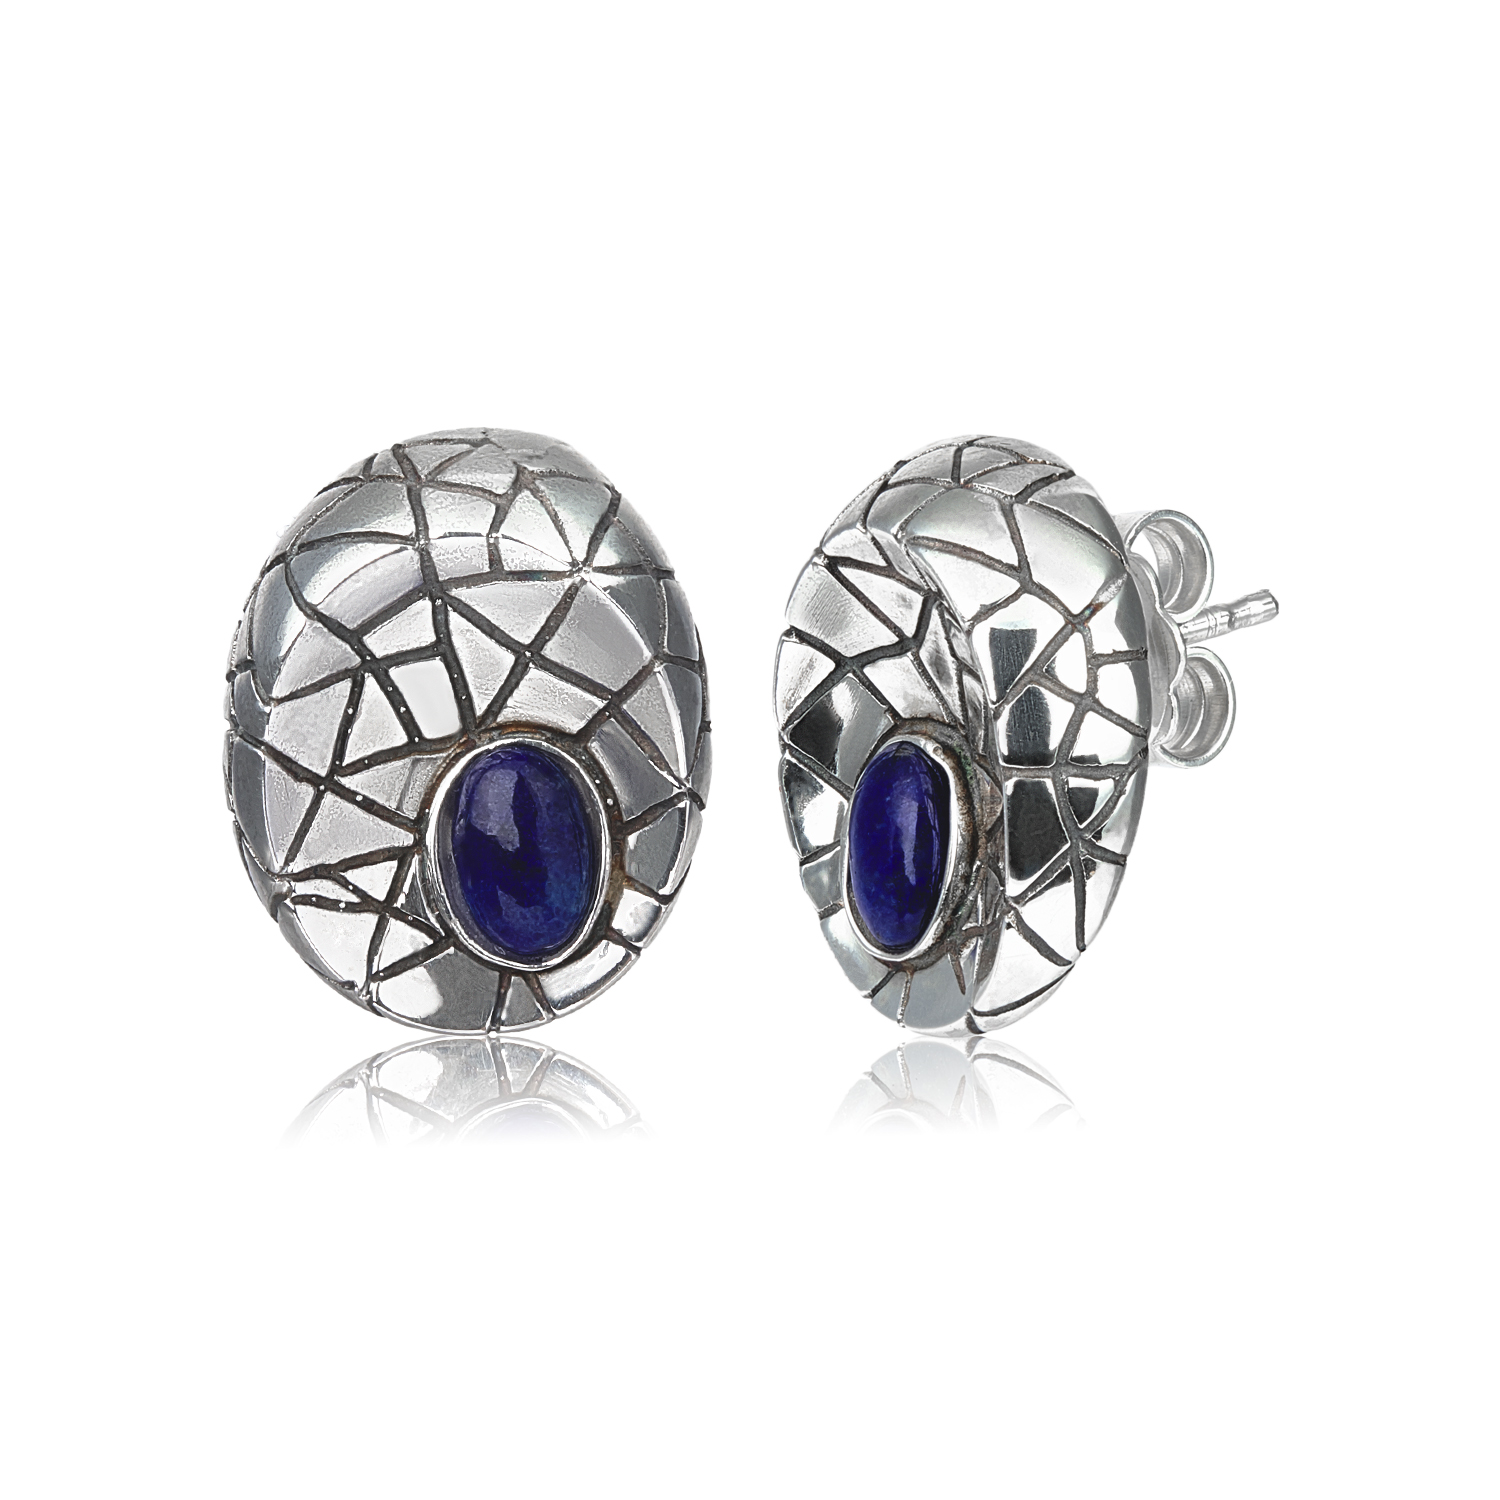 Lapislazuli small earrings